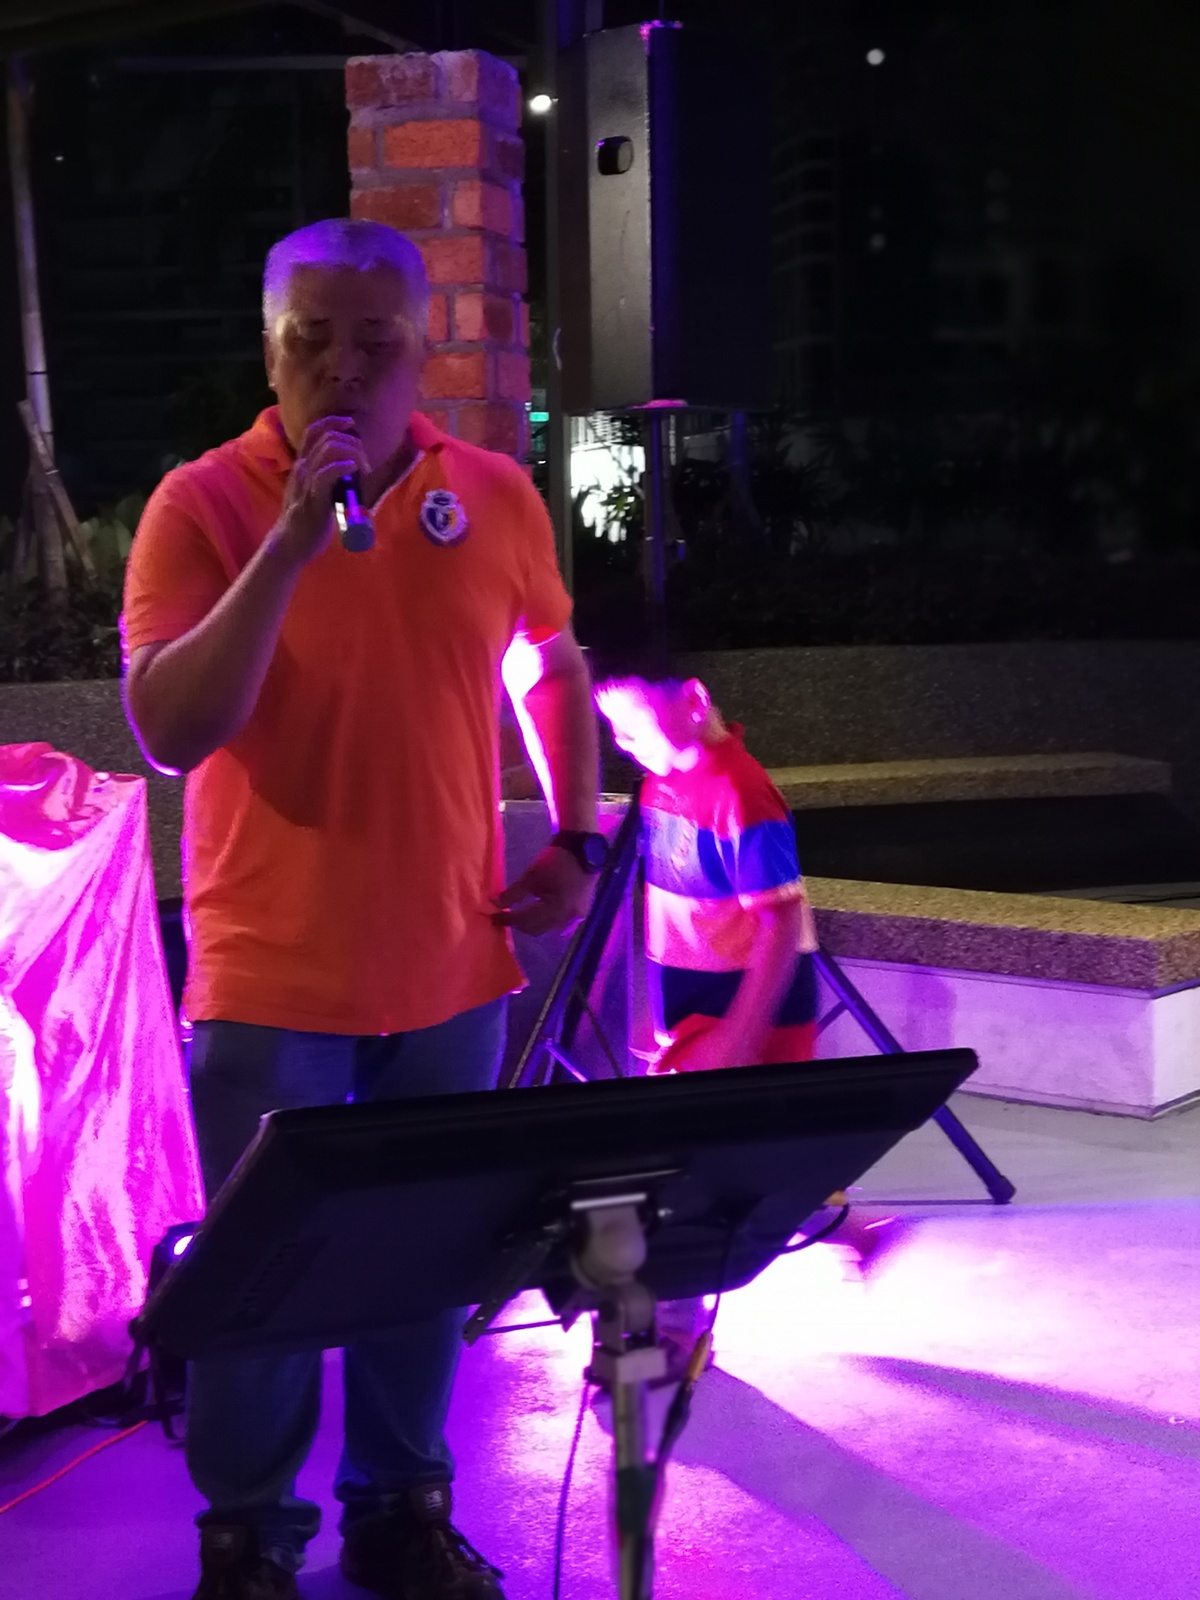 Mr U Chin Ong expressed his thanks to all the staff, sponsors and guest to make the event a success